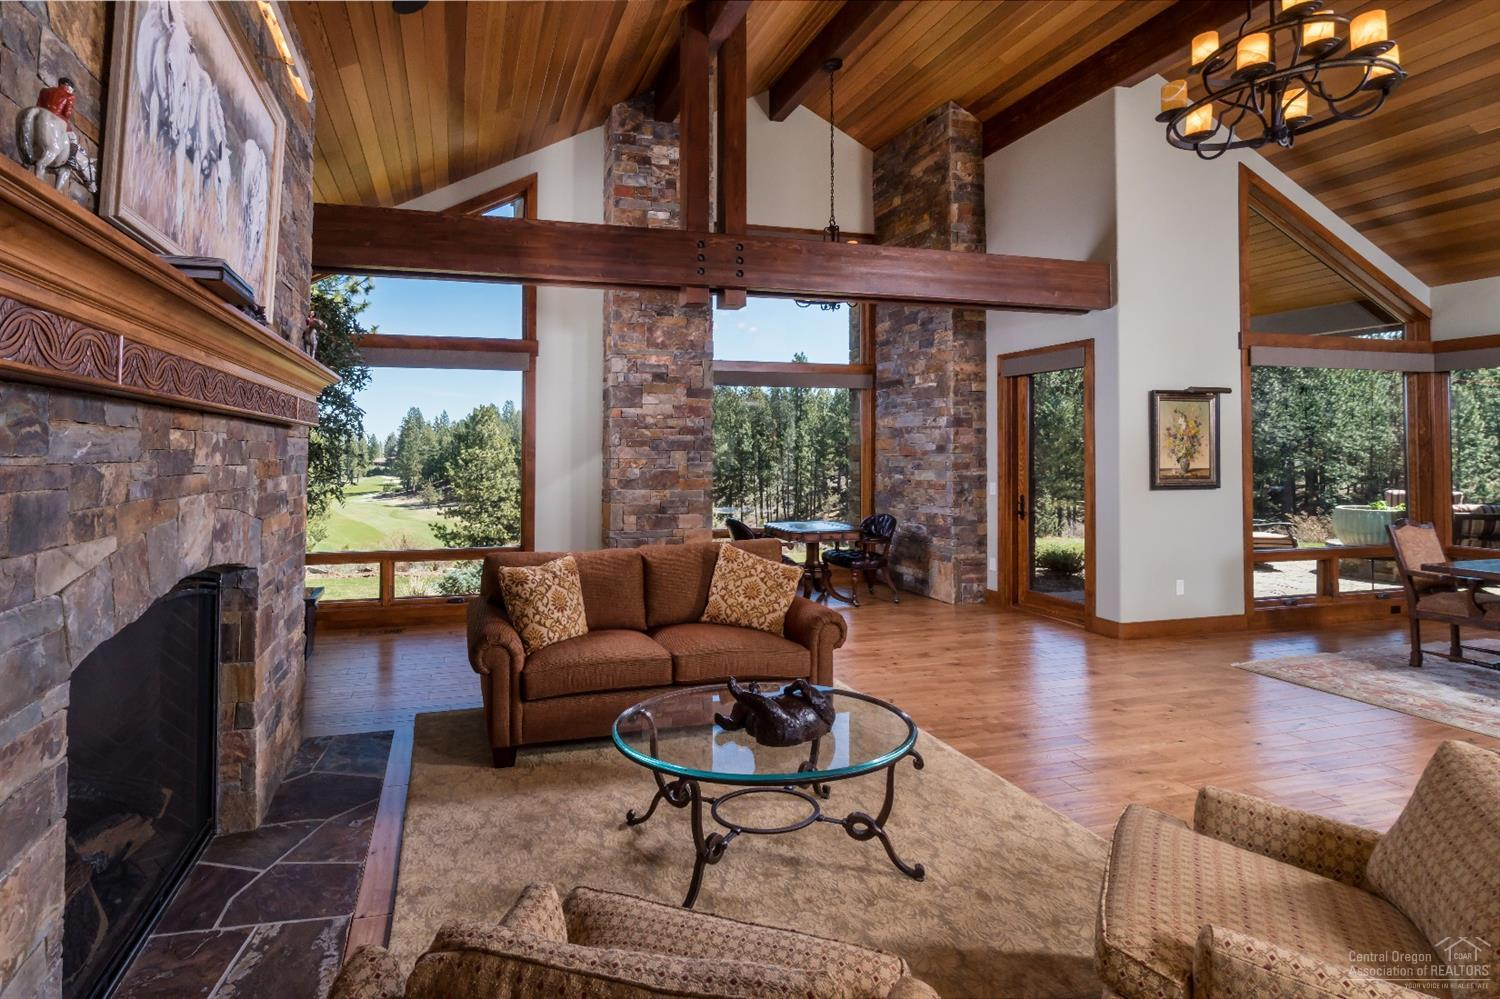 Vaulted great room greets guests. Large picture wi